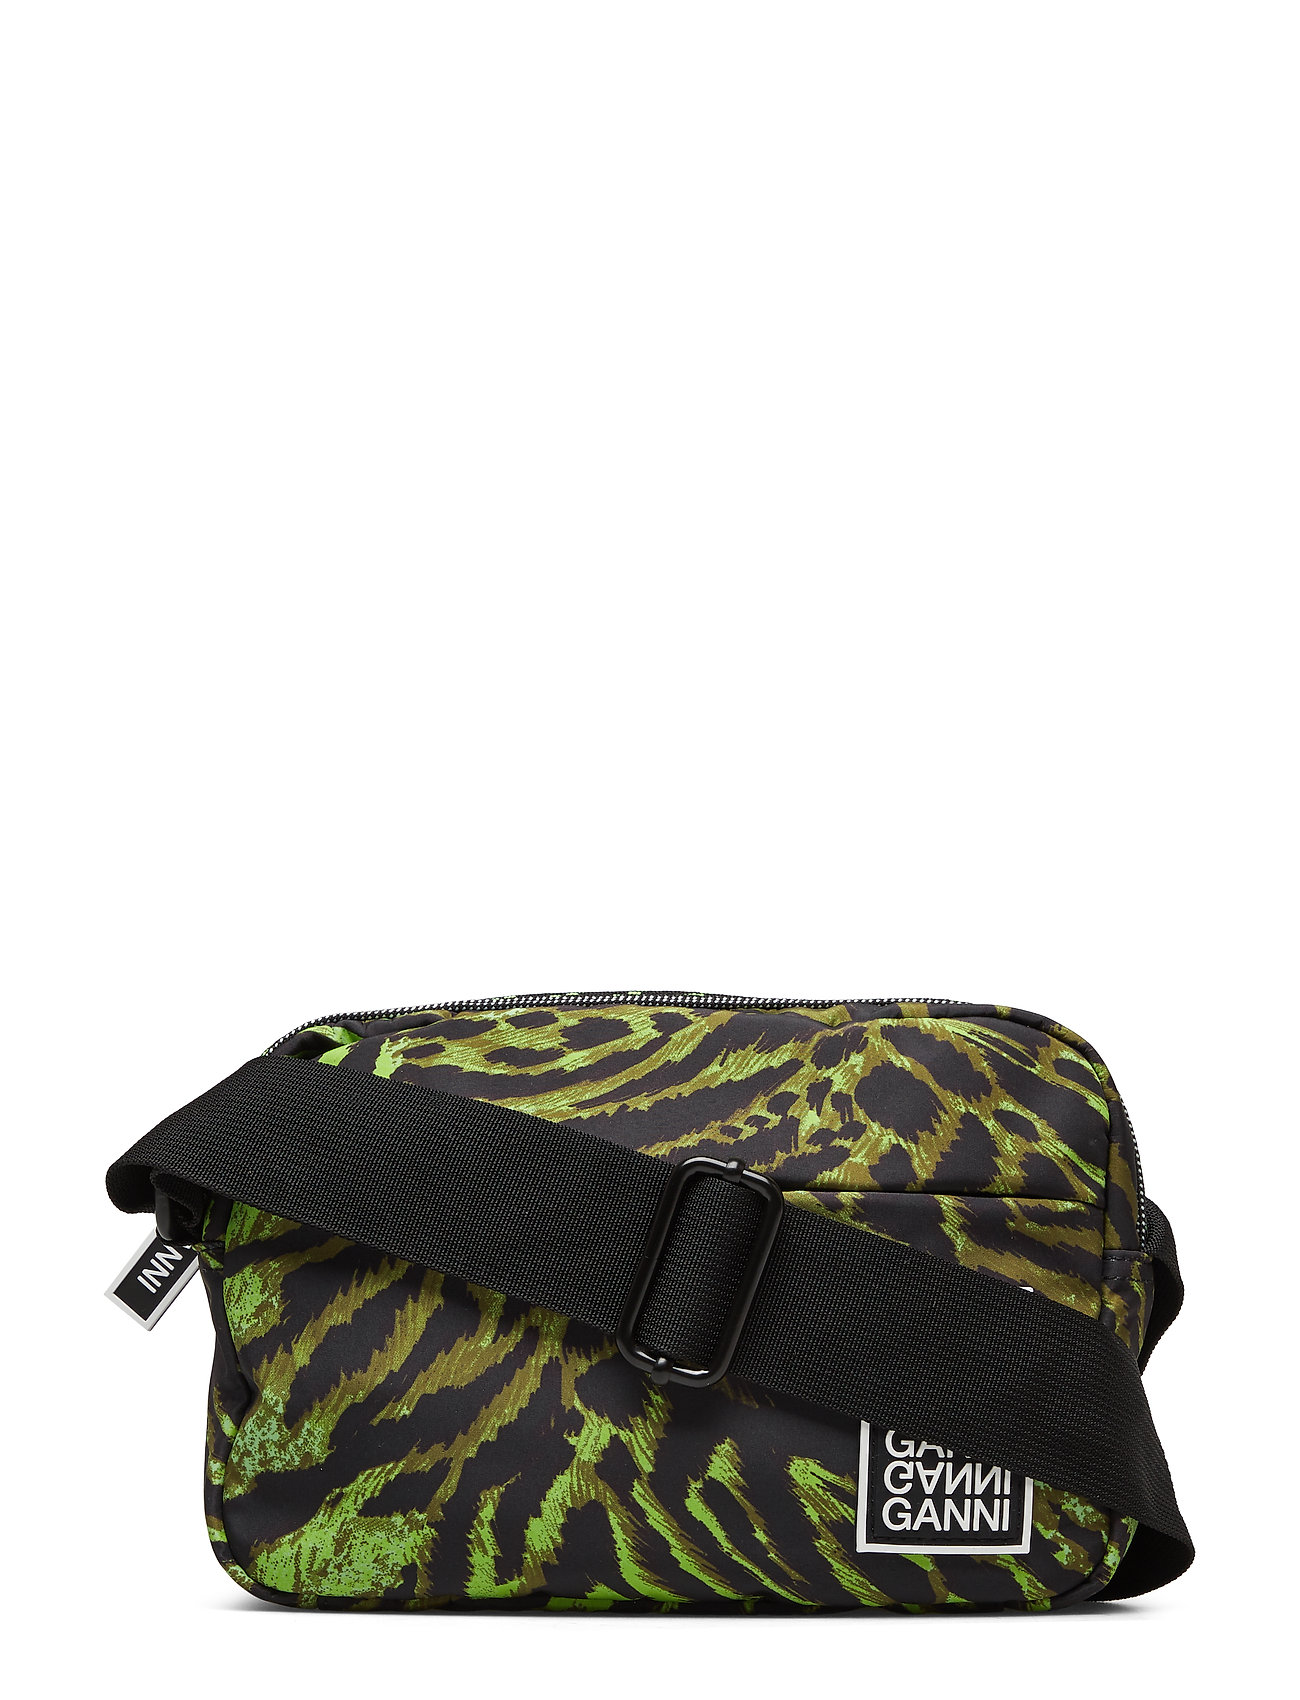 Ganni Tech Fabric Bags - LIME TIGER